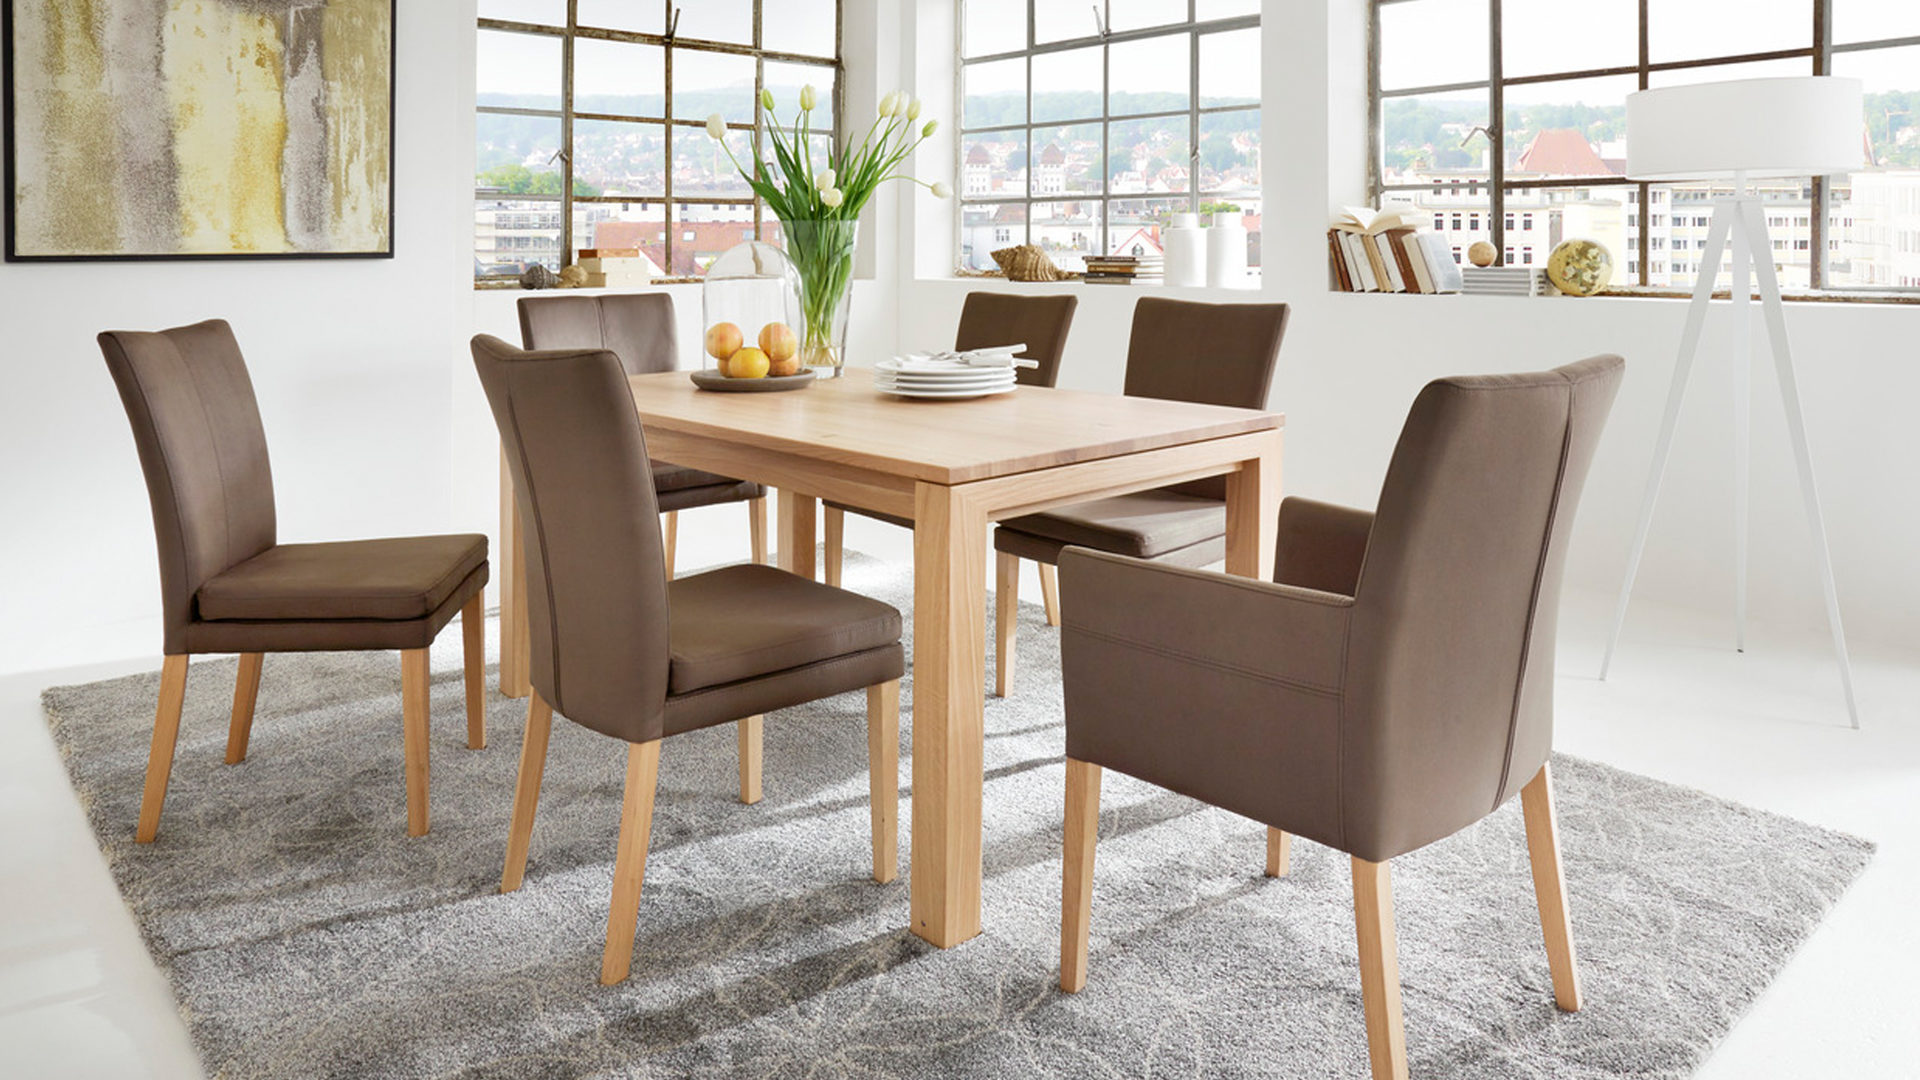 Möbel Eilers Apen Interliving Interliving Magazin Lavie Schwingstuhl Lavie Stuhl Color Line Als Komfortables Sitzmöbel Braune Mikrofaser Nirvana 906 Eiche Biancofarbenes Gestell